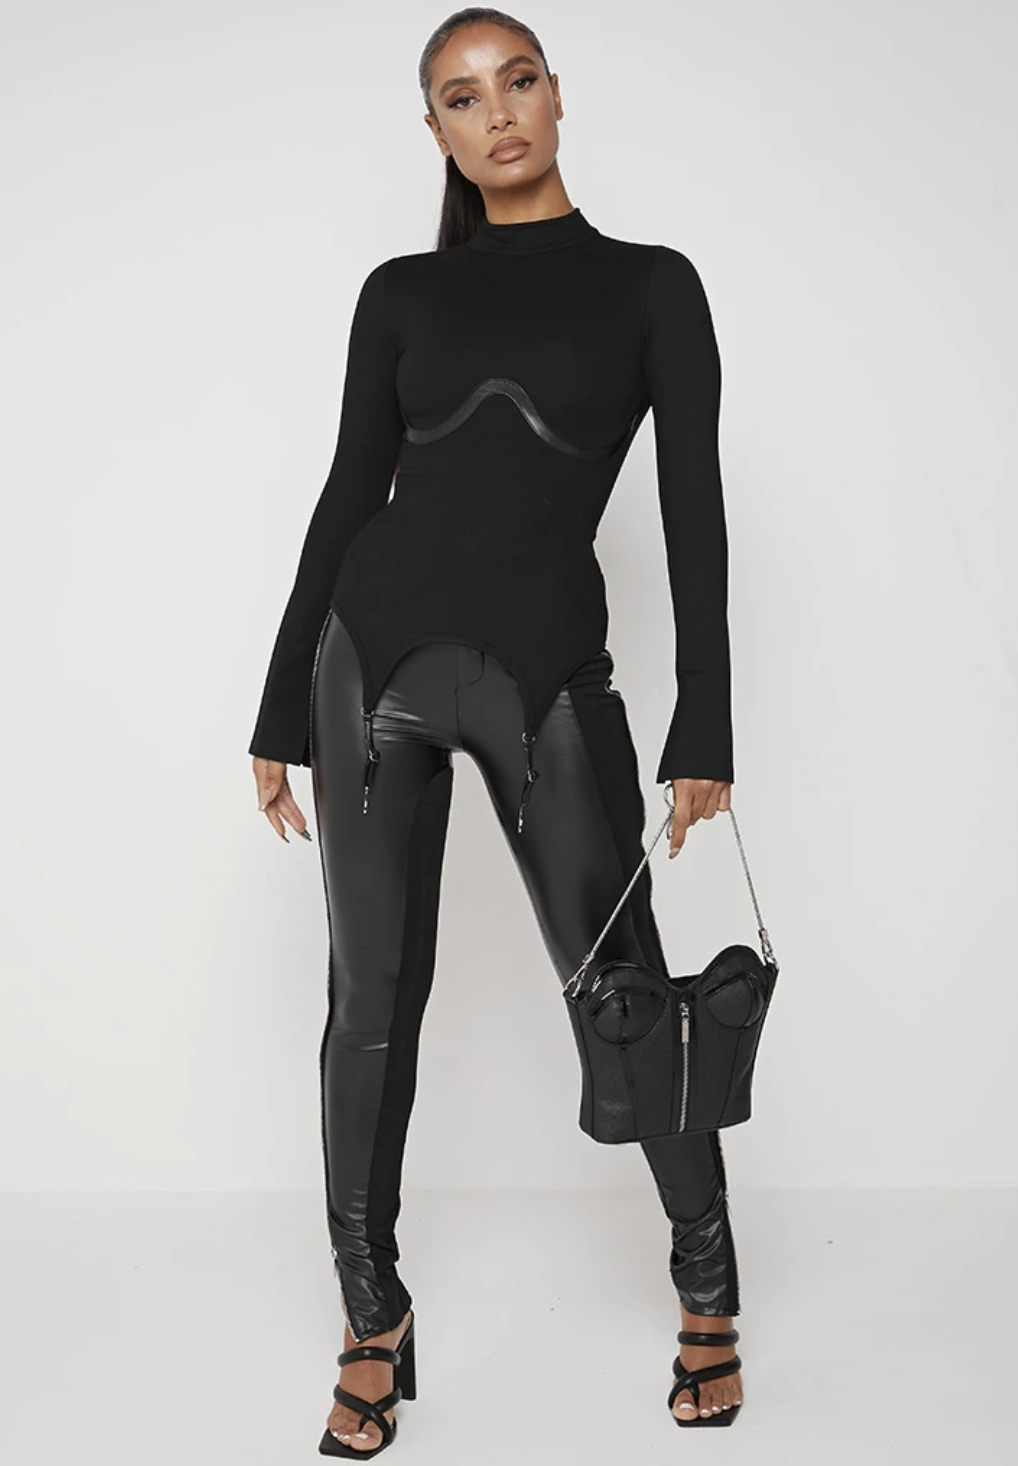 model wearing a turtleneck sweater with a corseted design, black leather pants, and a corset-shaped purse